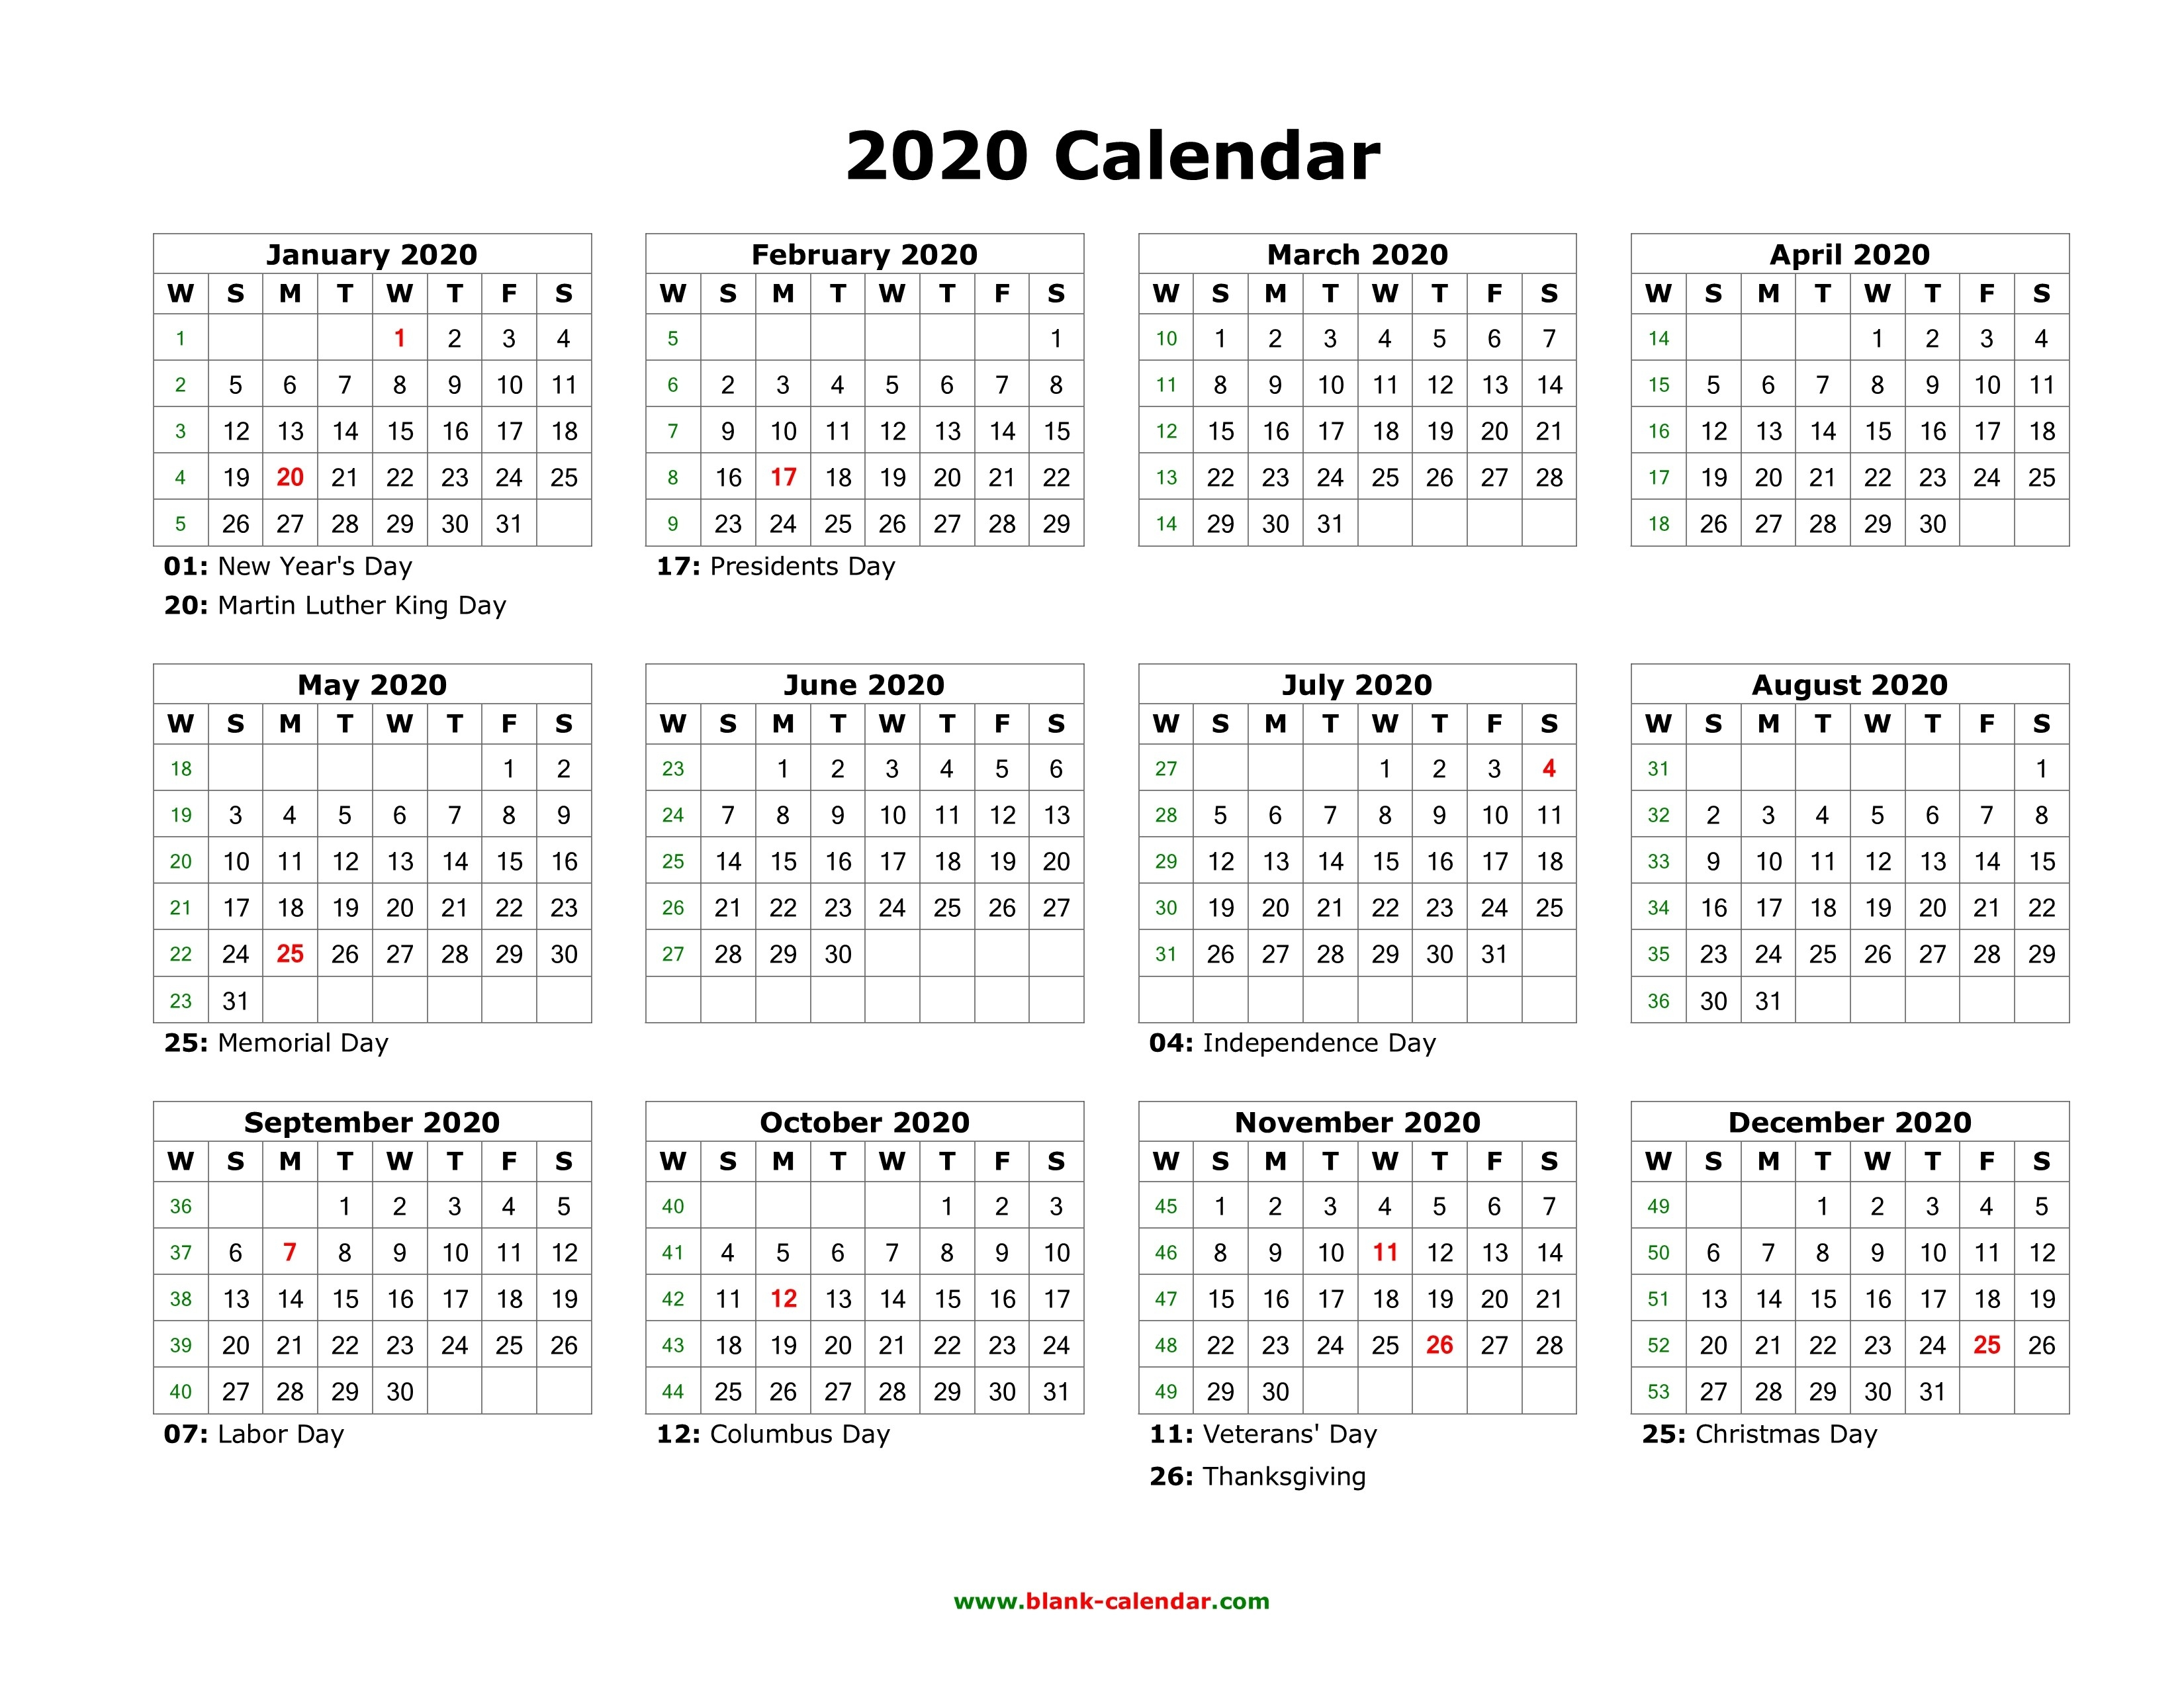 Download Blank Calendar 2020 With Us Holidays (12 Months On-6 Month Blank Calendar 2020